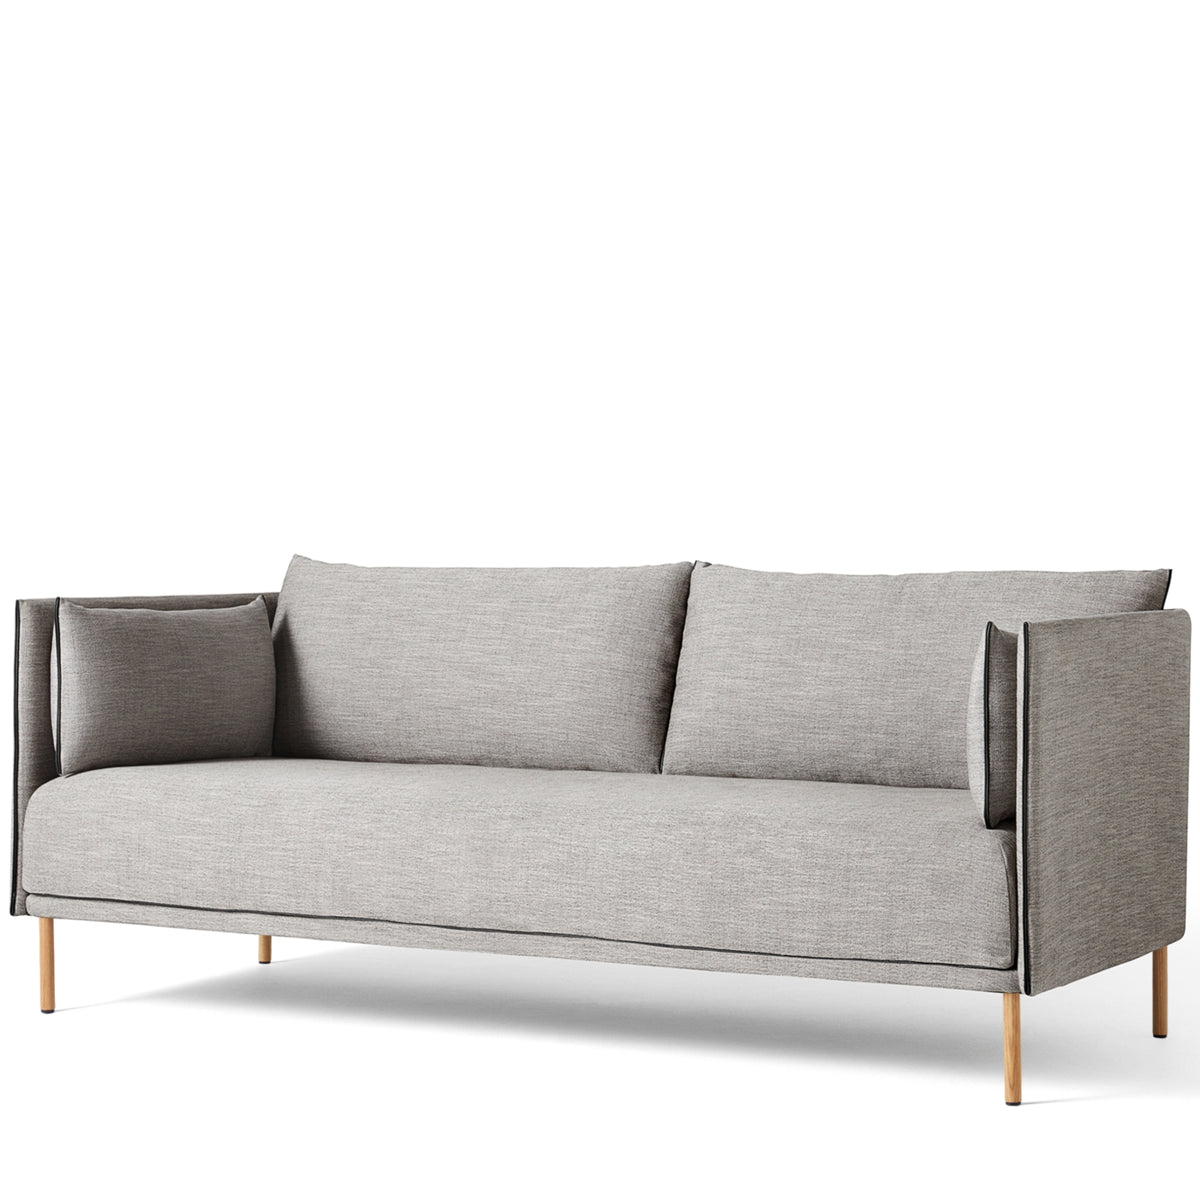 HAY Office Silhouette Sofa 2 Seater - Oak Leg Ruskin